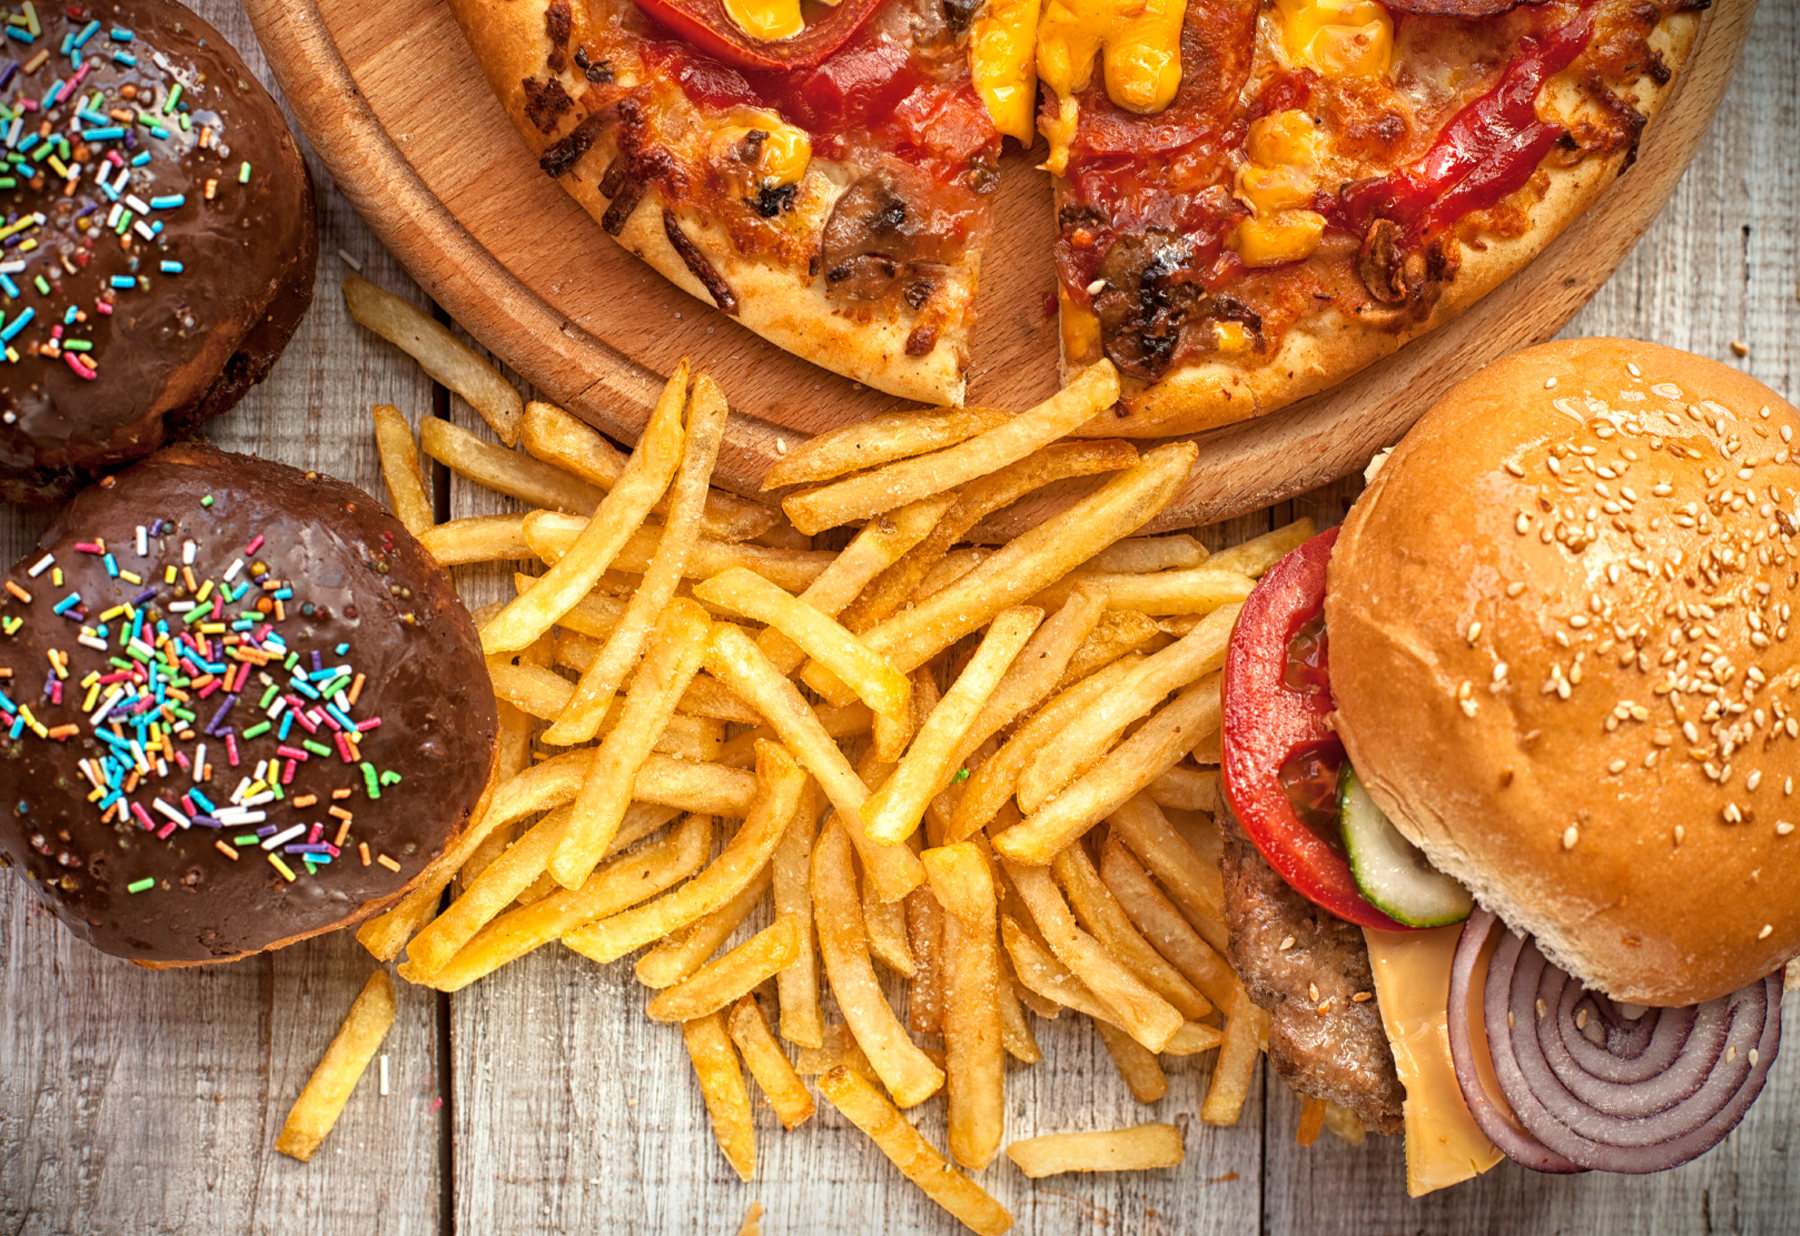 Junk Food Images Group with 63 items 1800x1236